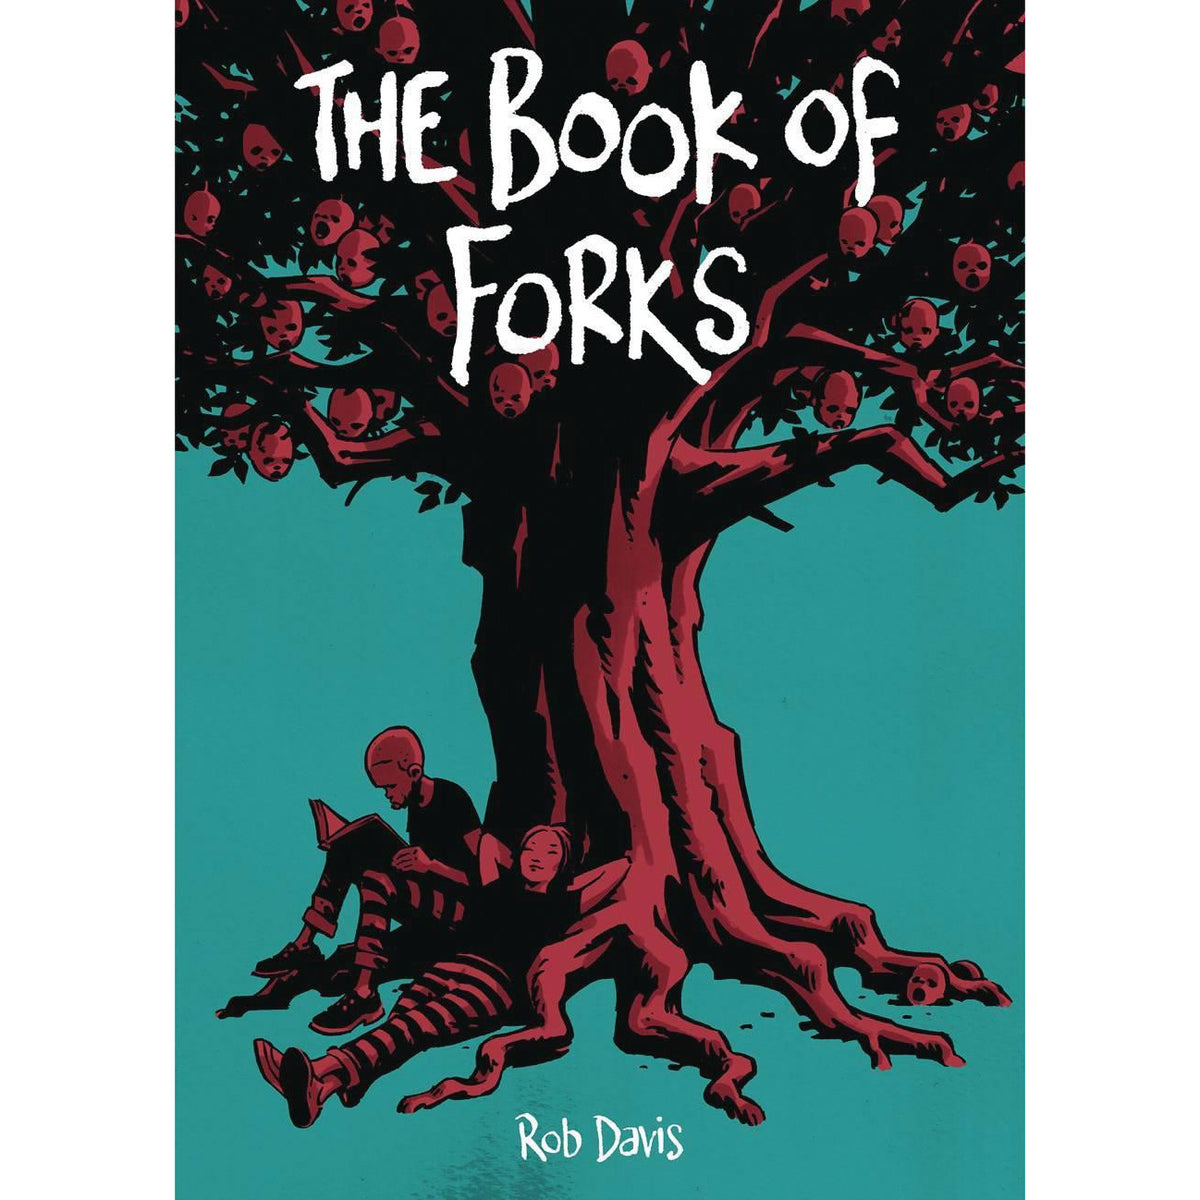 BOOK OF FORKS